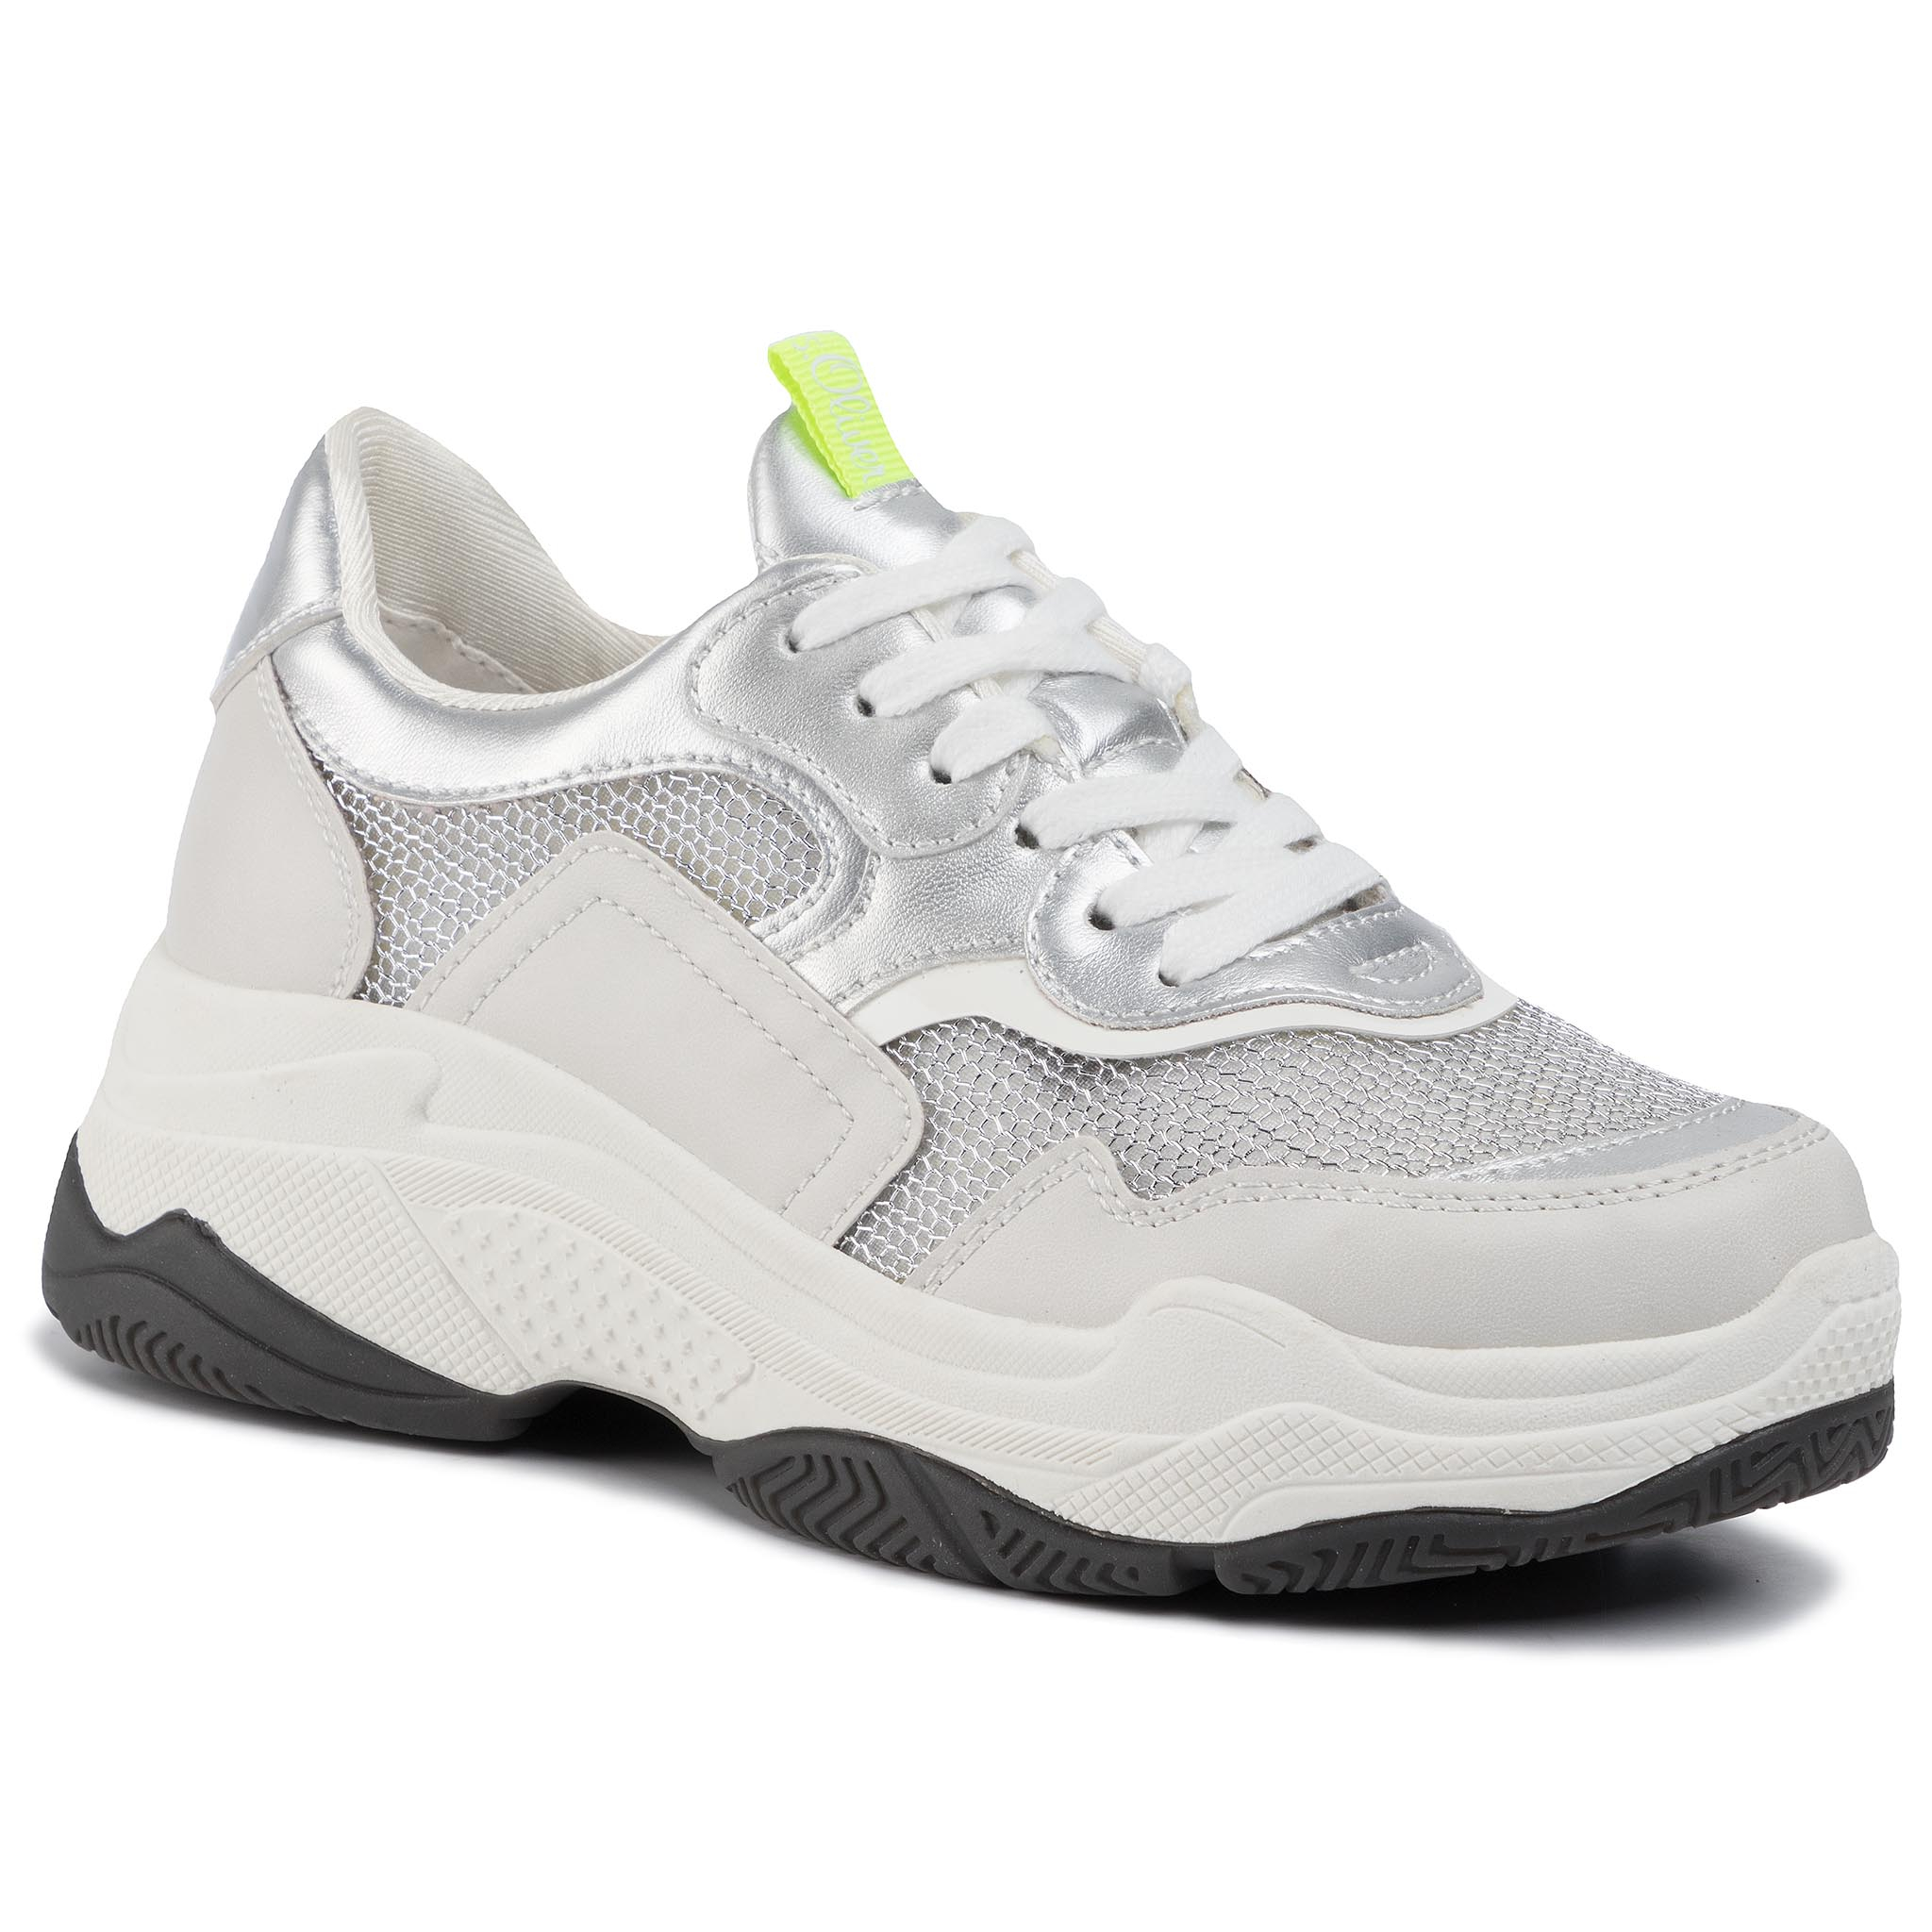 Image of Sneakers S.OLIVER - 5-23635-33 White Comb. 110